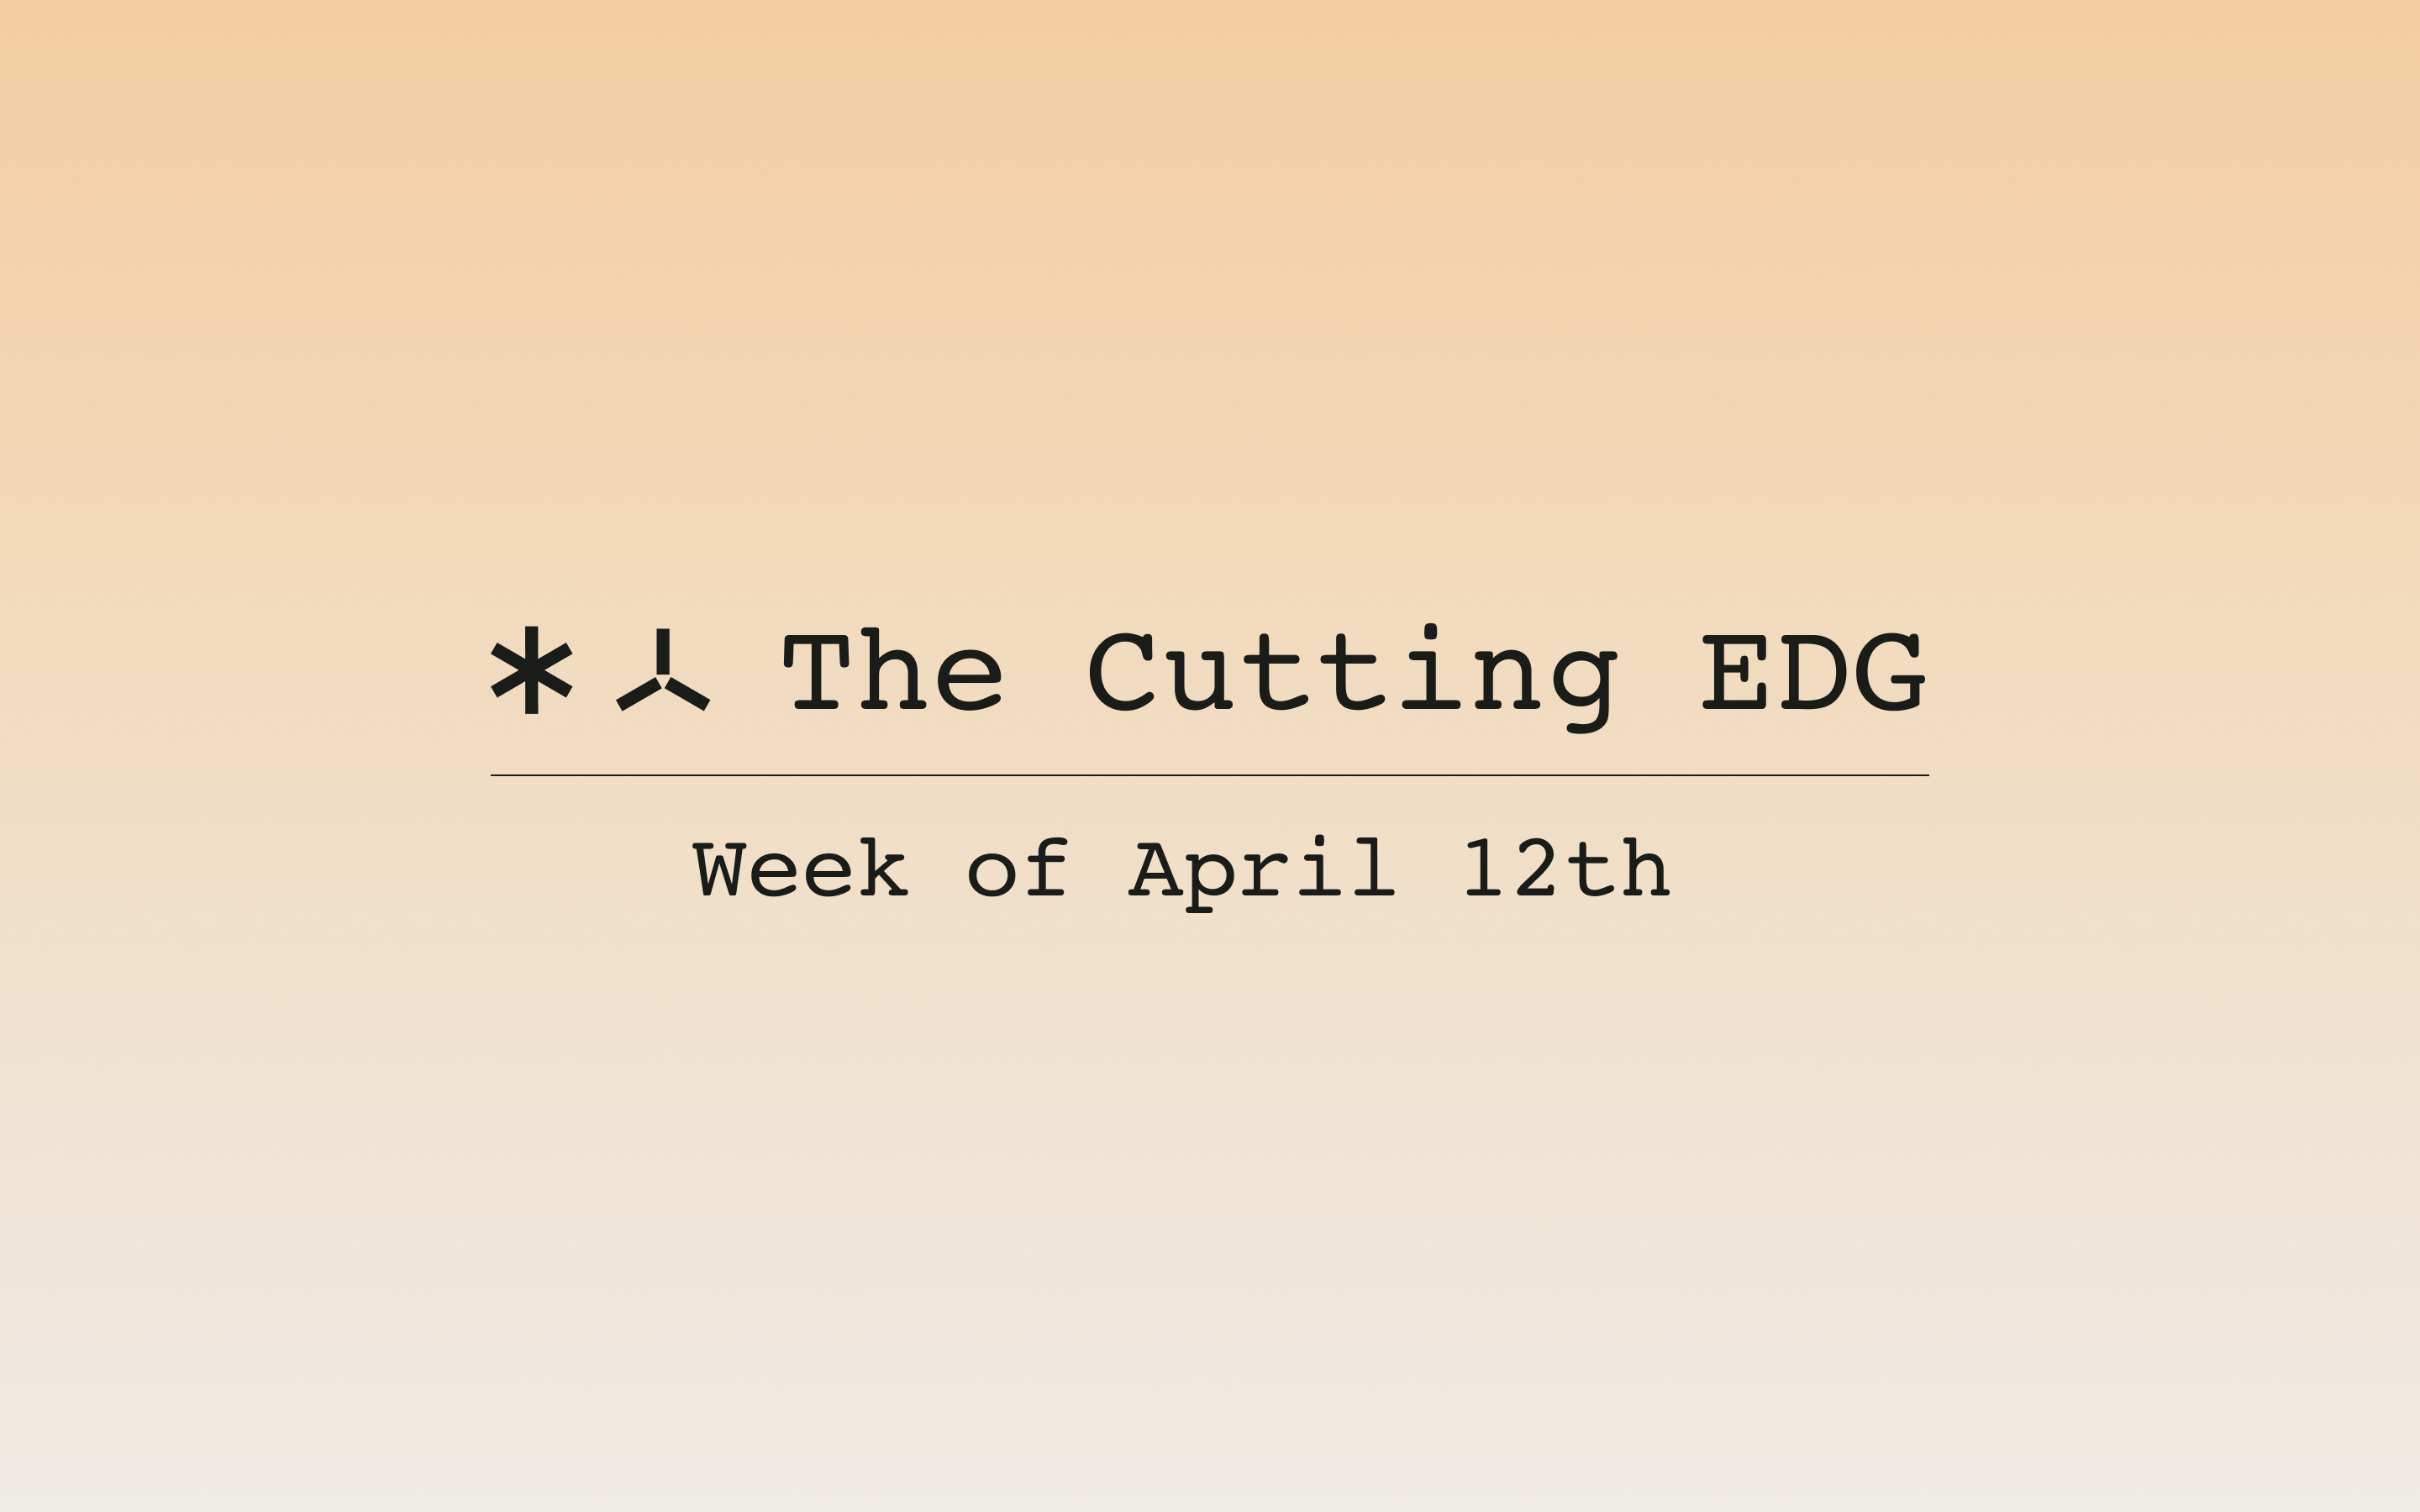 The Cutting EDG: Week of April 12th